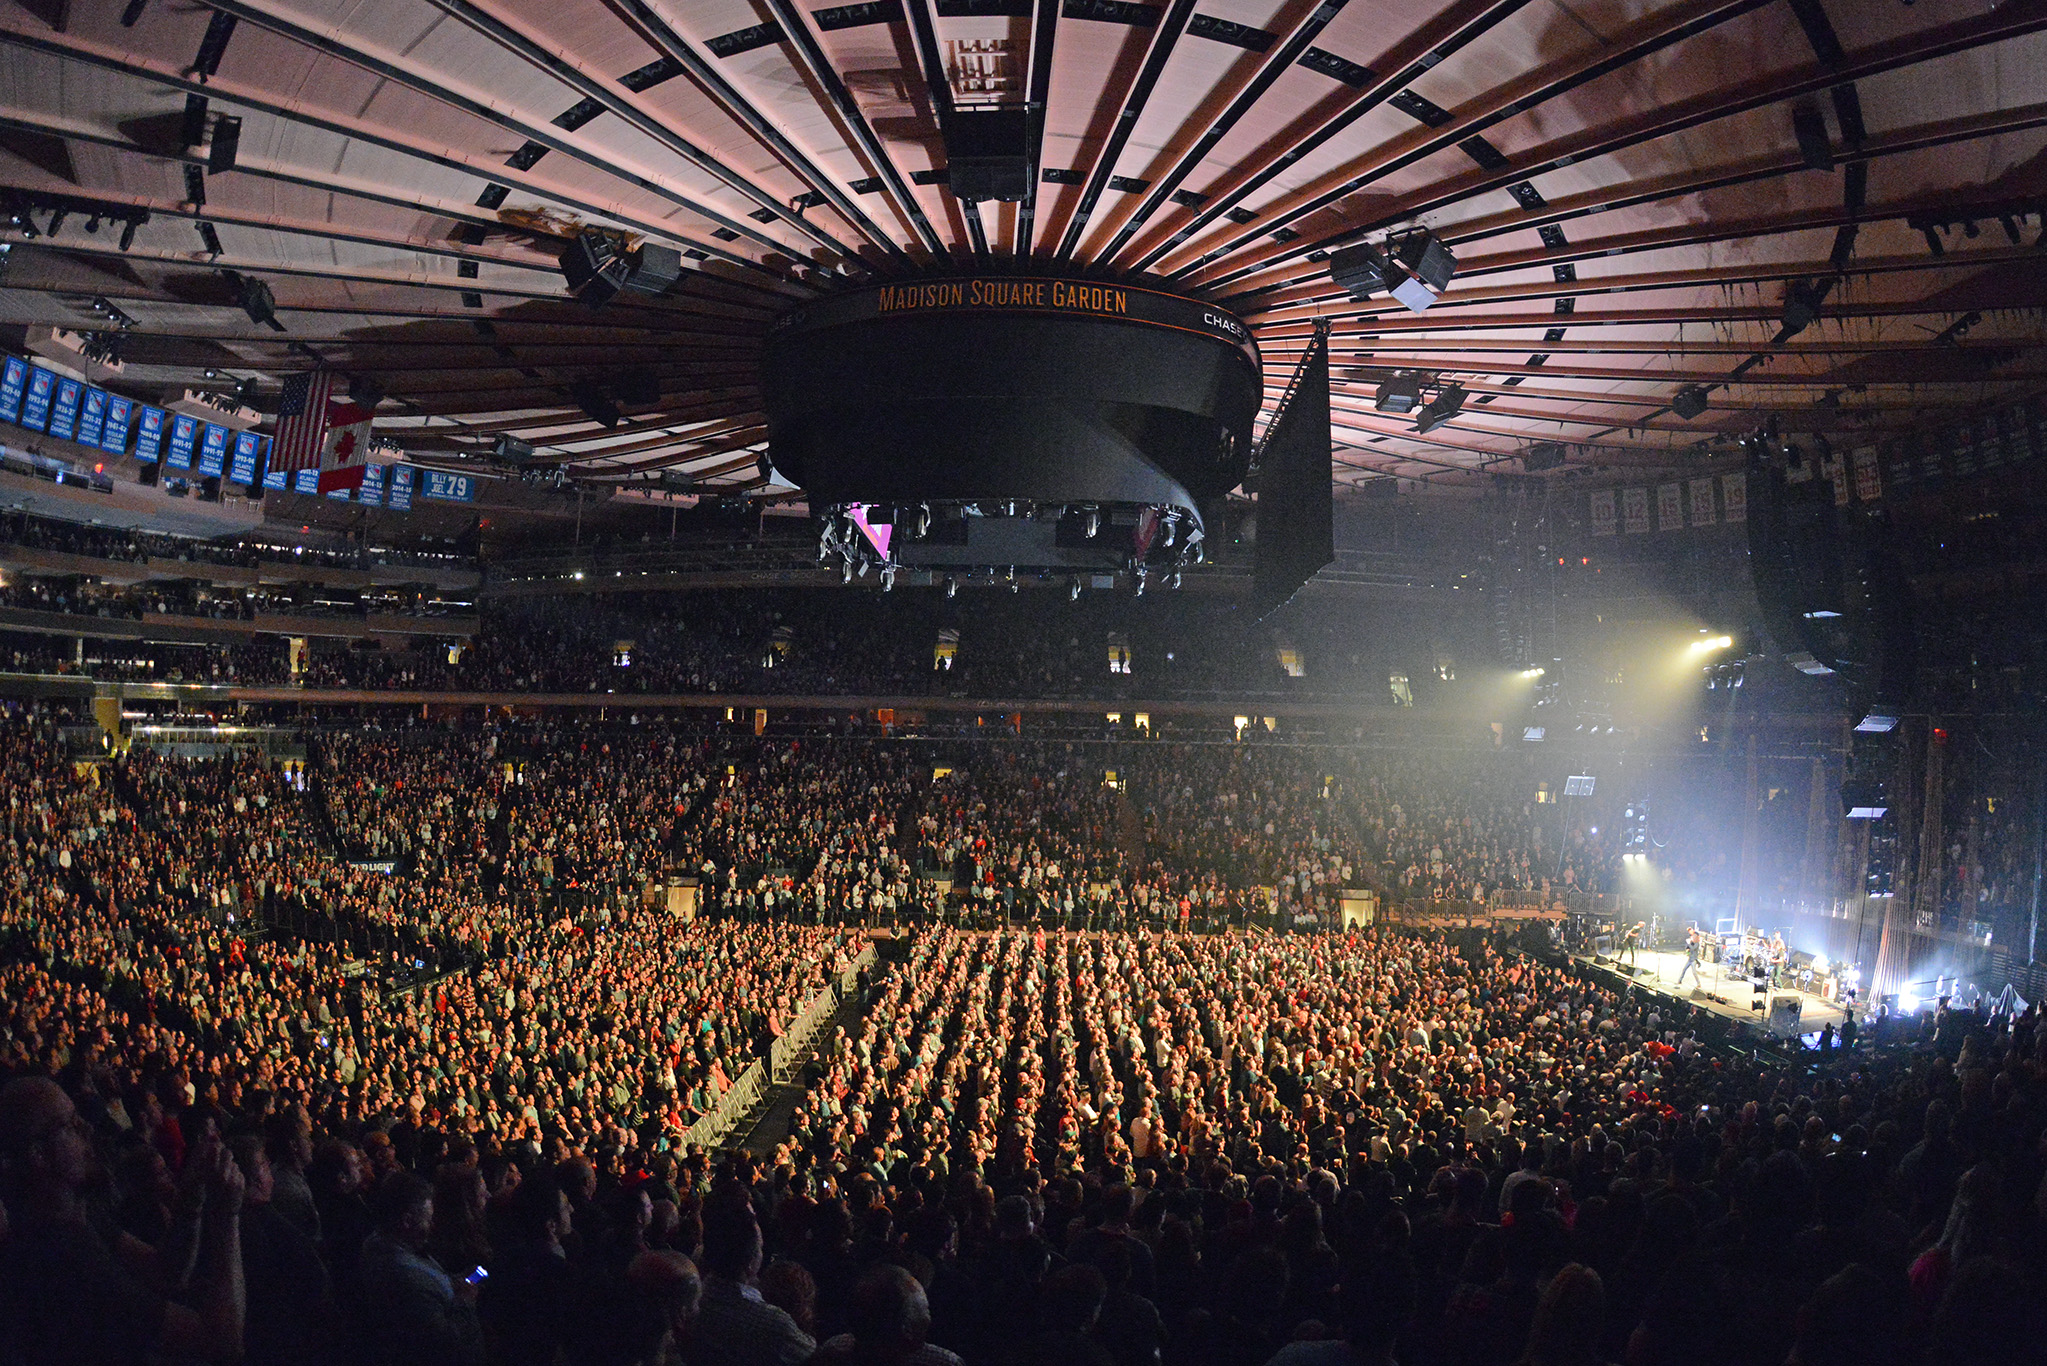 05DSC_3996.JPG. Joy Proved Undying At Madison Square Garden ...